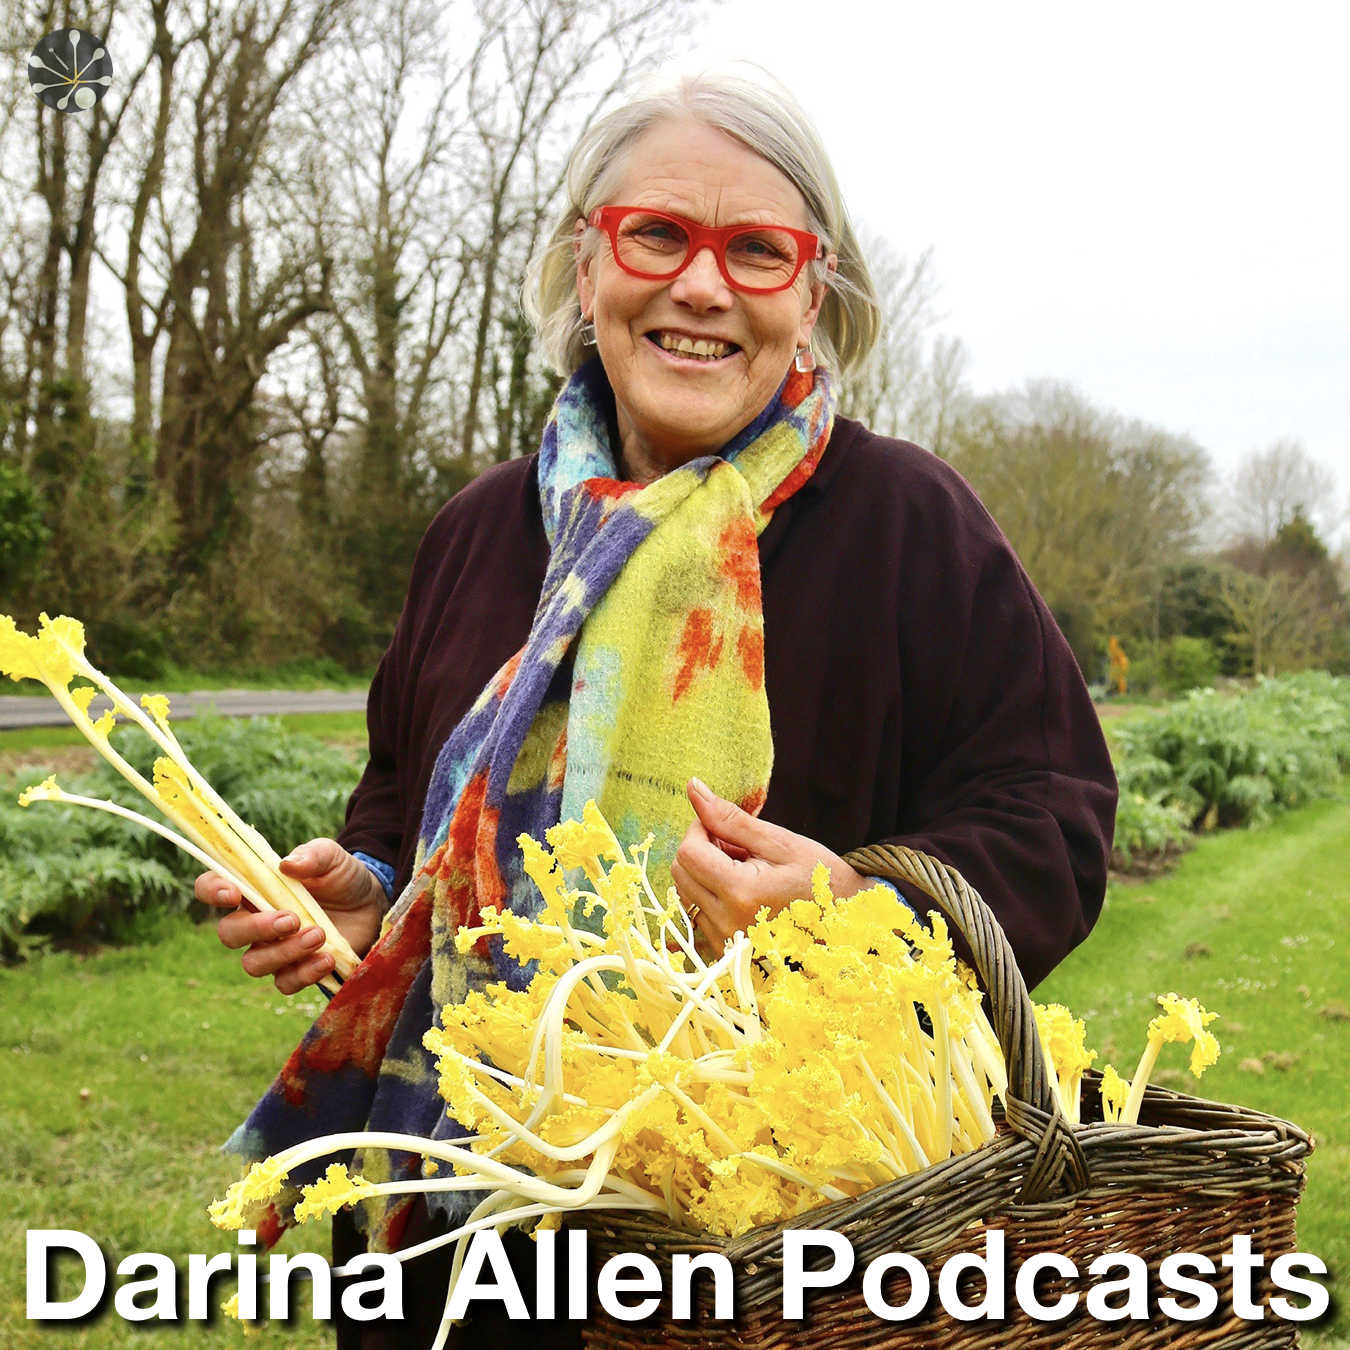 Darina Allen Podcasts